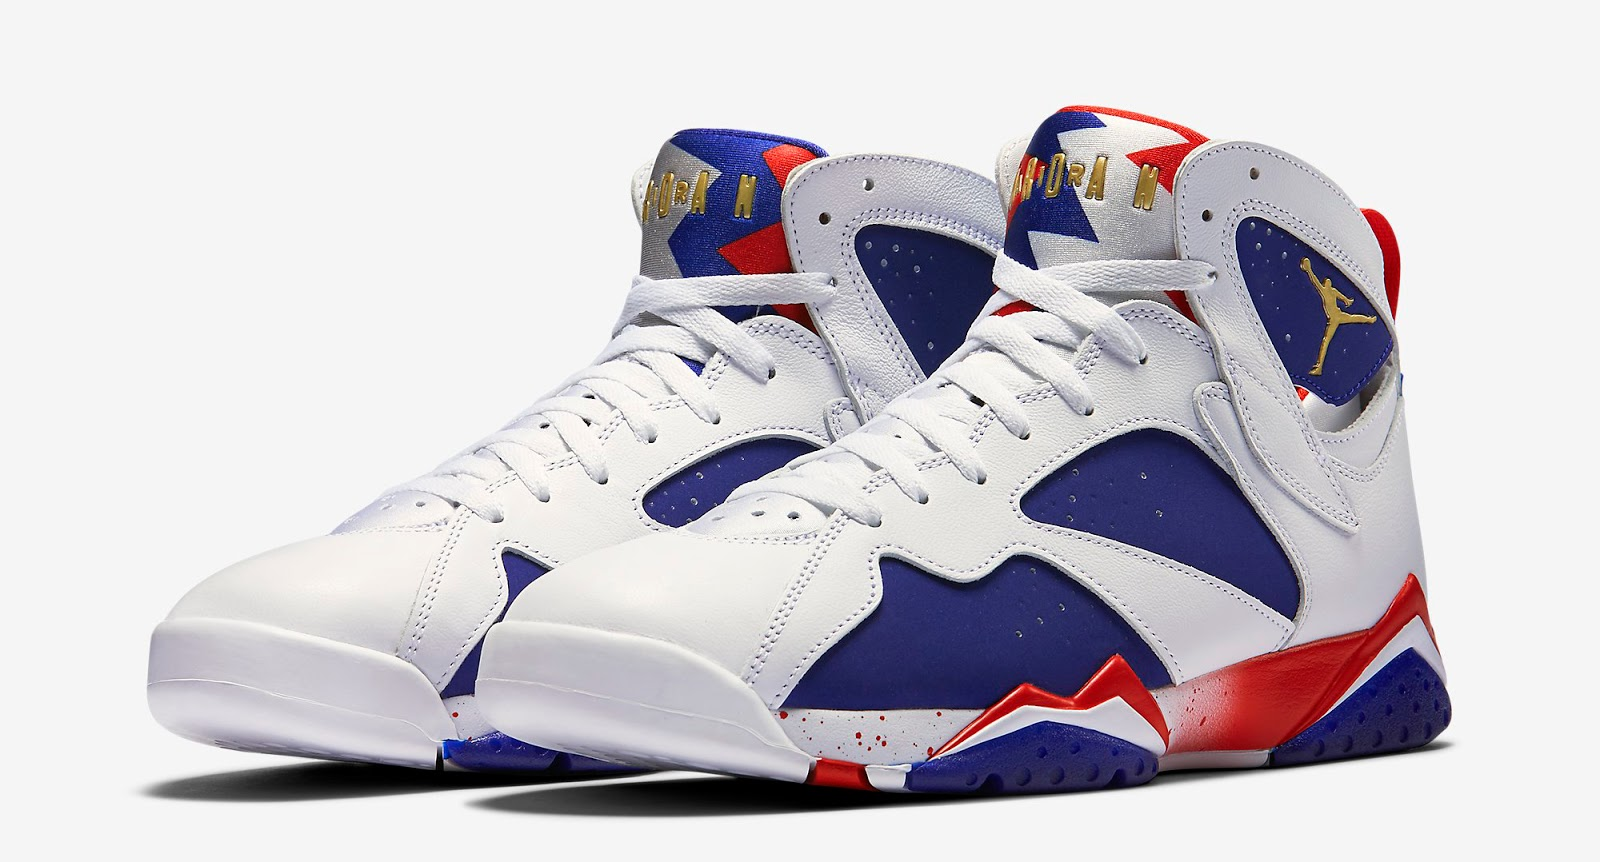 Nike Air Jordan 7 Retro Olympic Edition BCoiLgJt